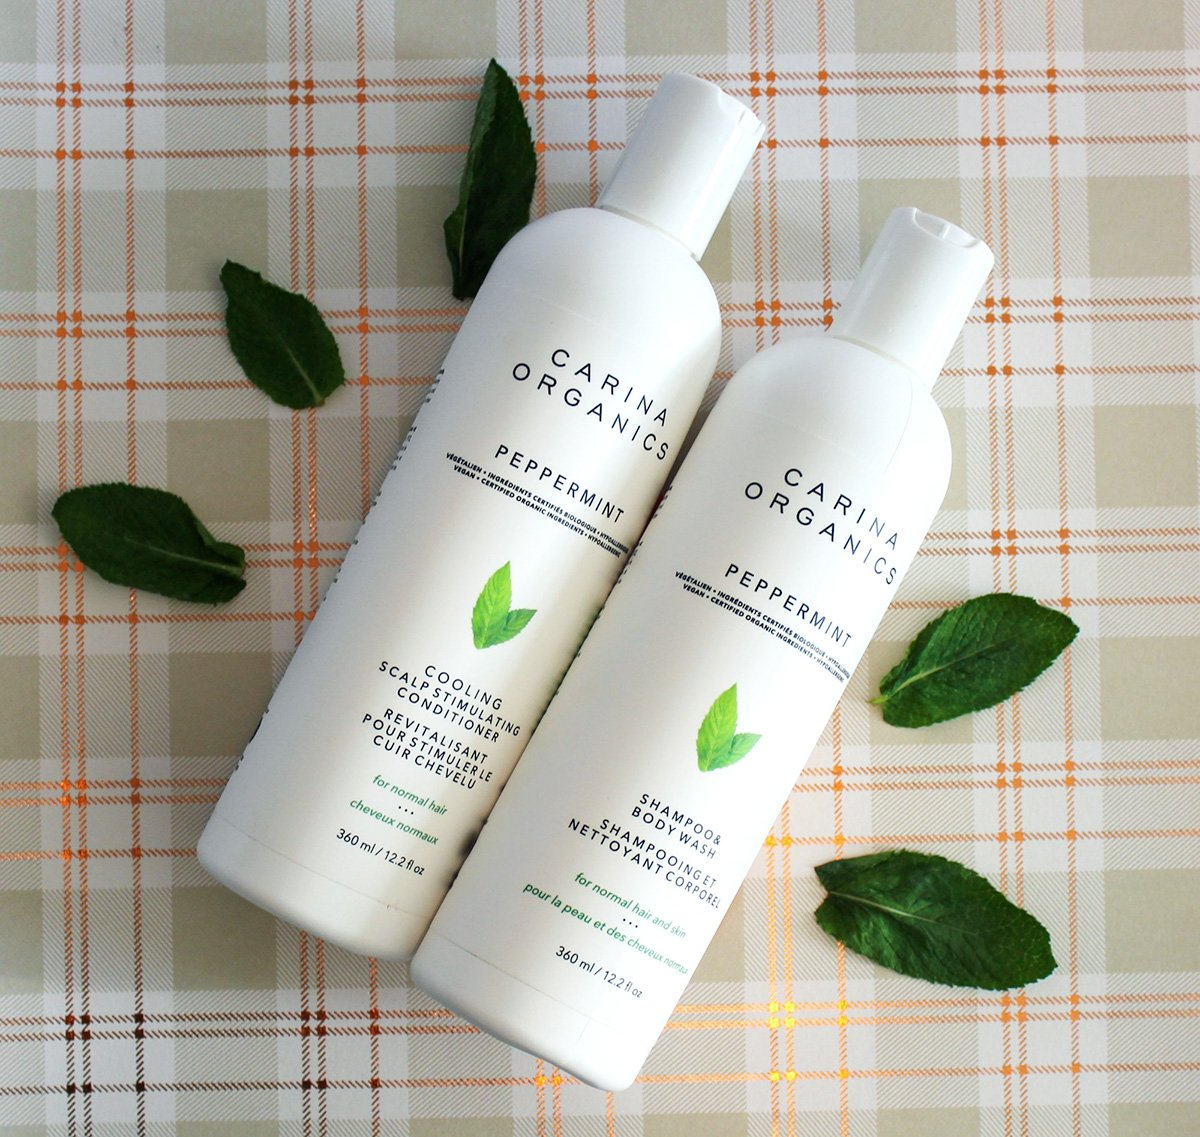 Carina Organics Peppermint Shampoo + Conditioner